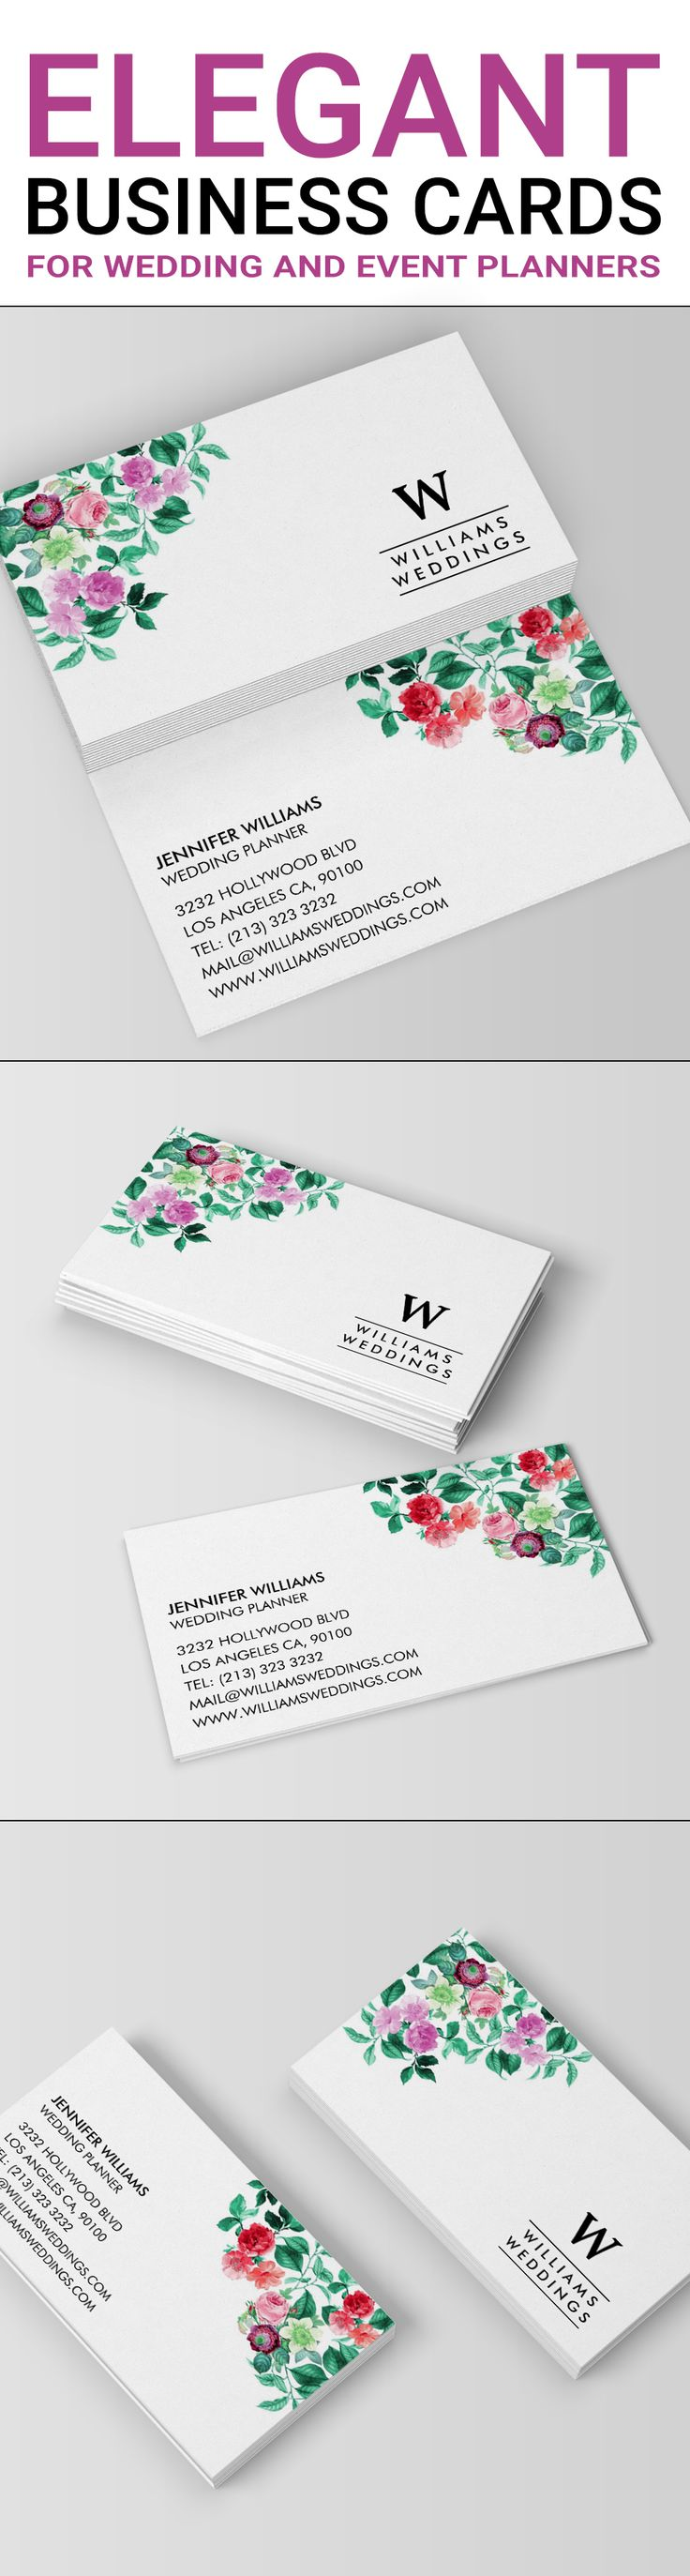 113 best business cards images on Pinterest